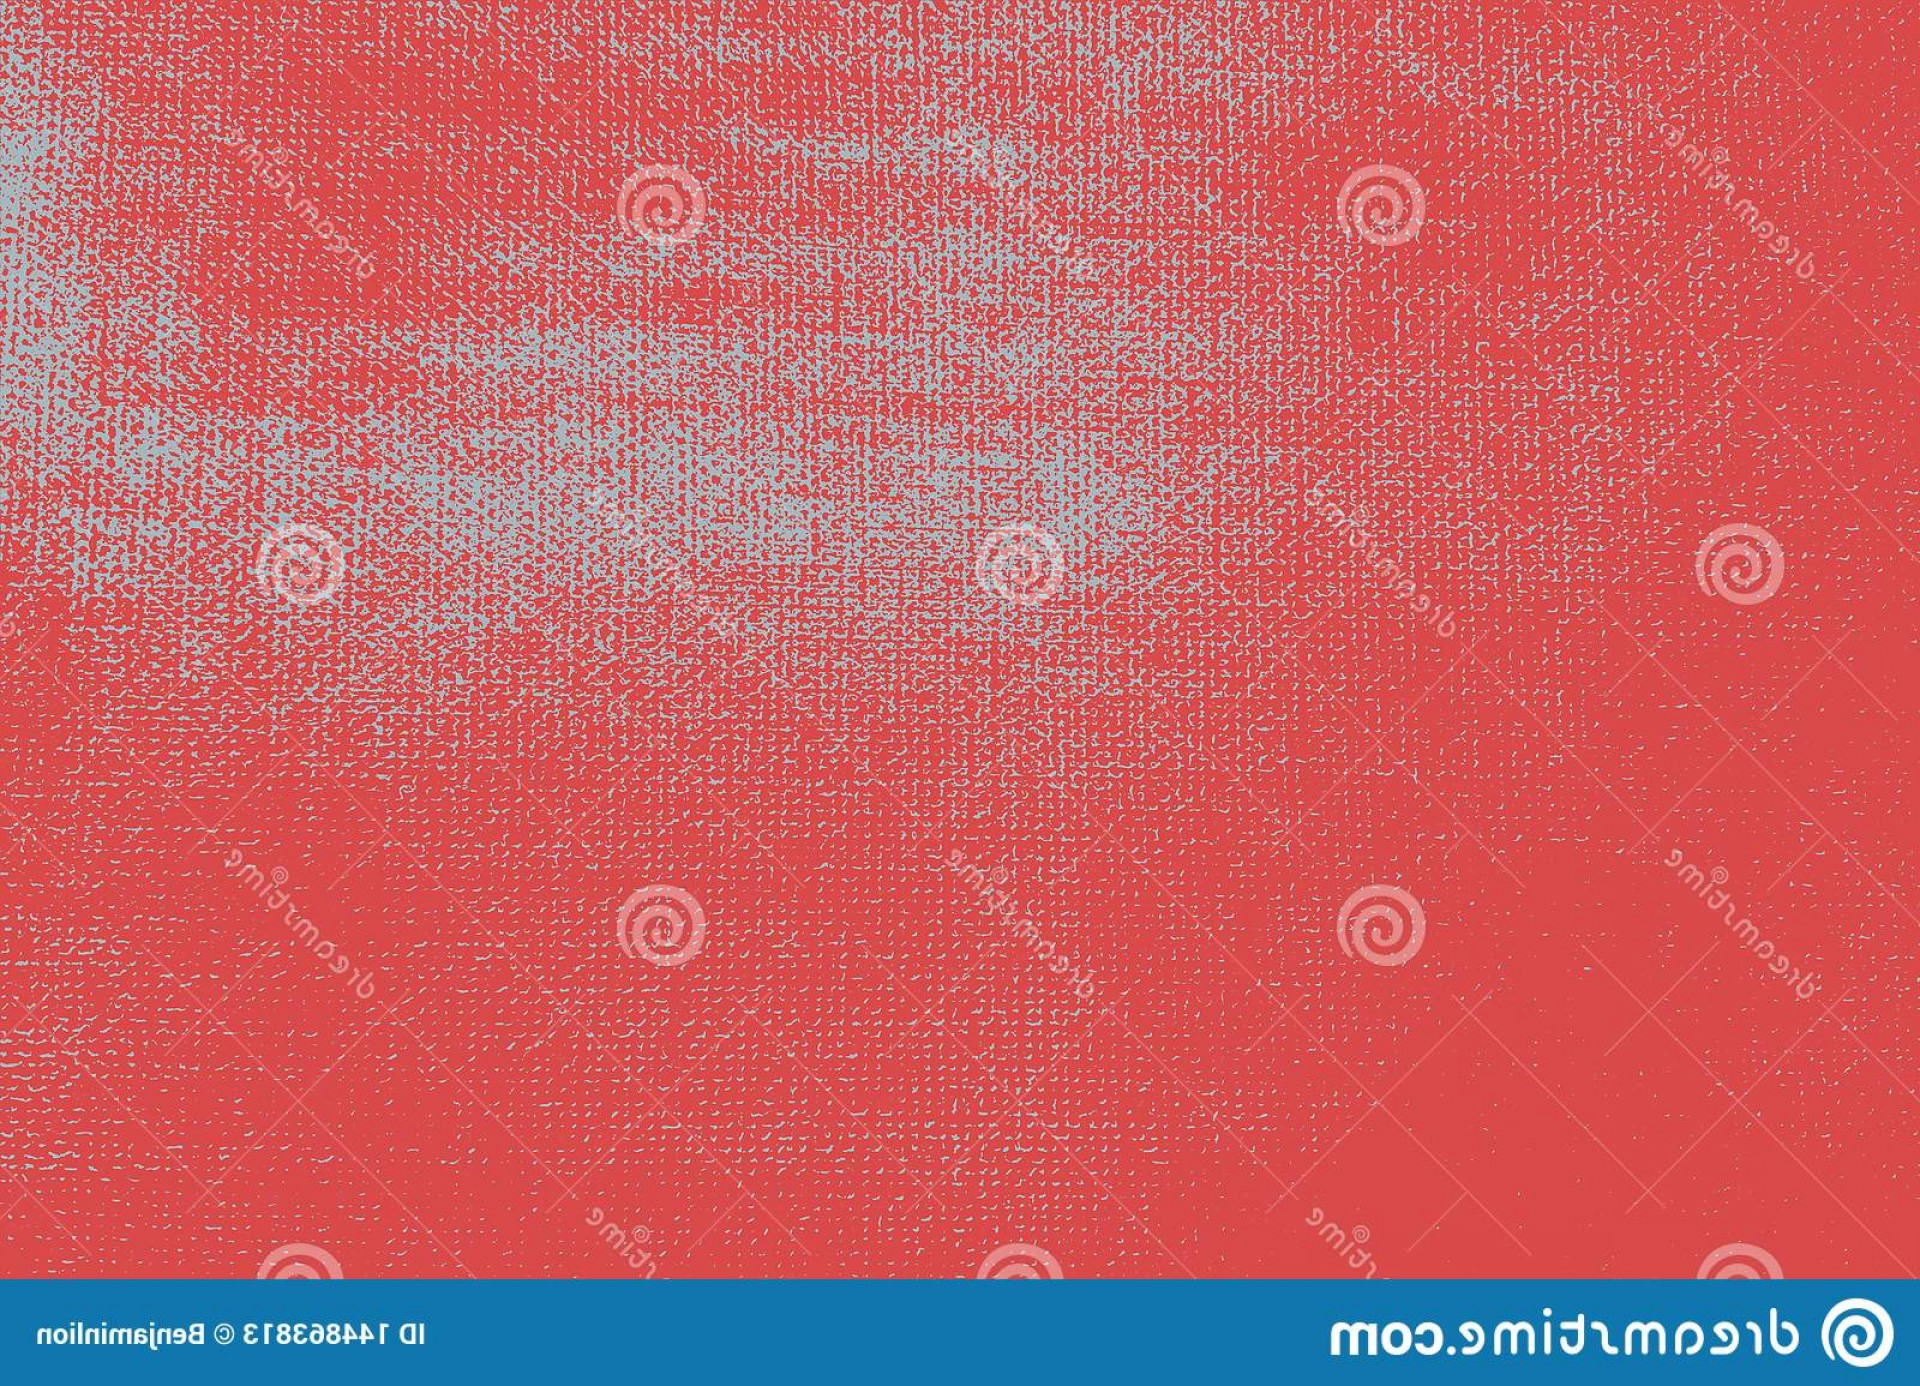 Distressed Red Background Vector: Grunge Red Rectangle Texture Your Design Empty Expressive Distressed Background Eps Vector Red Grunge Background Image